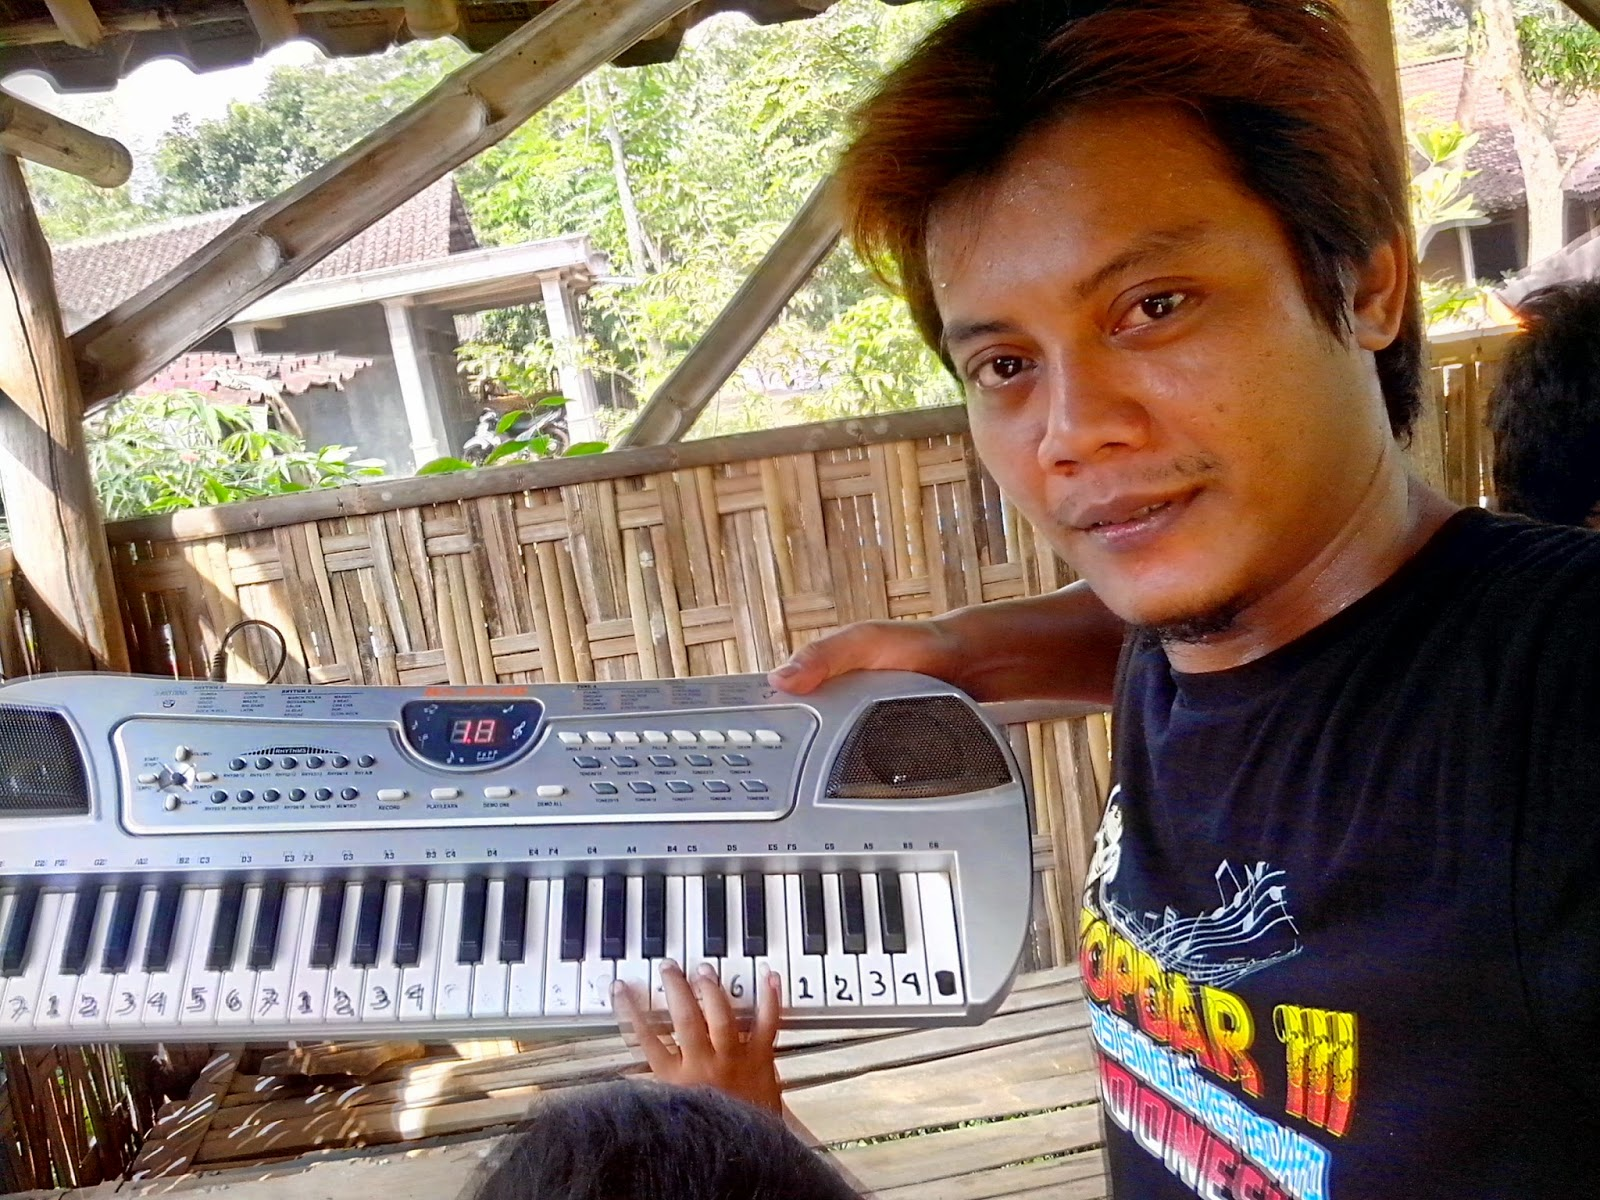 CARA MEMBUAT SERULING DANGDUT KEYBOARD KORG Pa SERIES